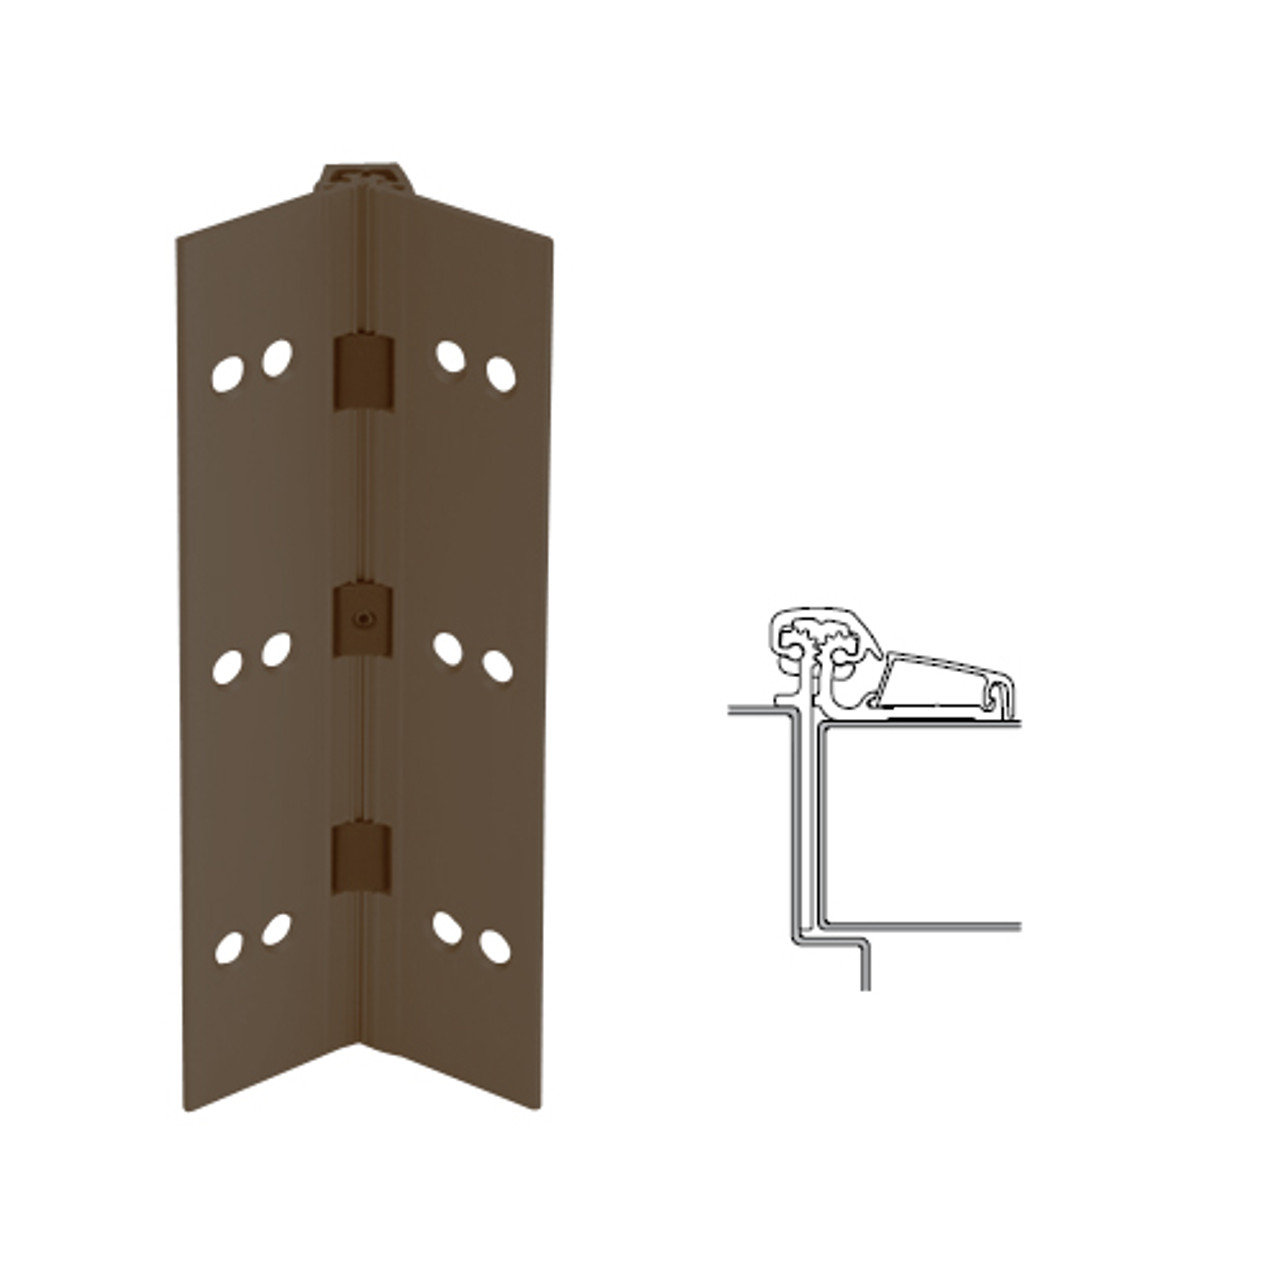 054XY-313AN-83-SECHM IVES Adjustable Half Surface Continuous Geared Hinges with Security Screws - Hex Pin Drive in Dark Bronze Anodized